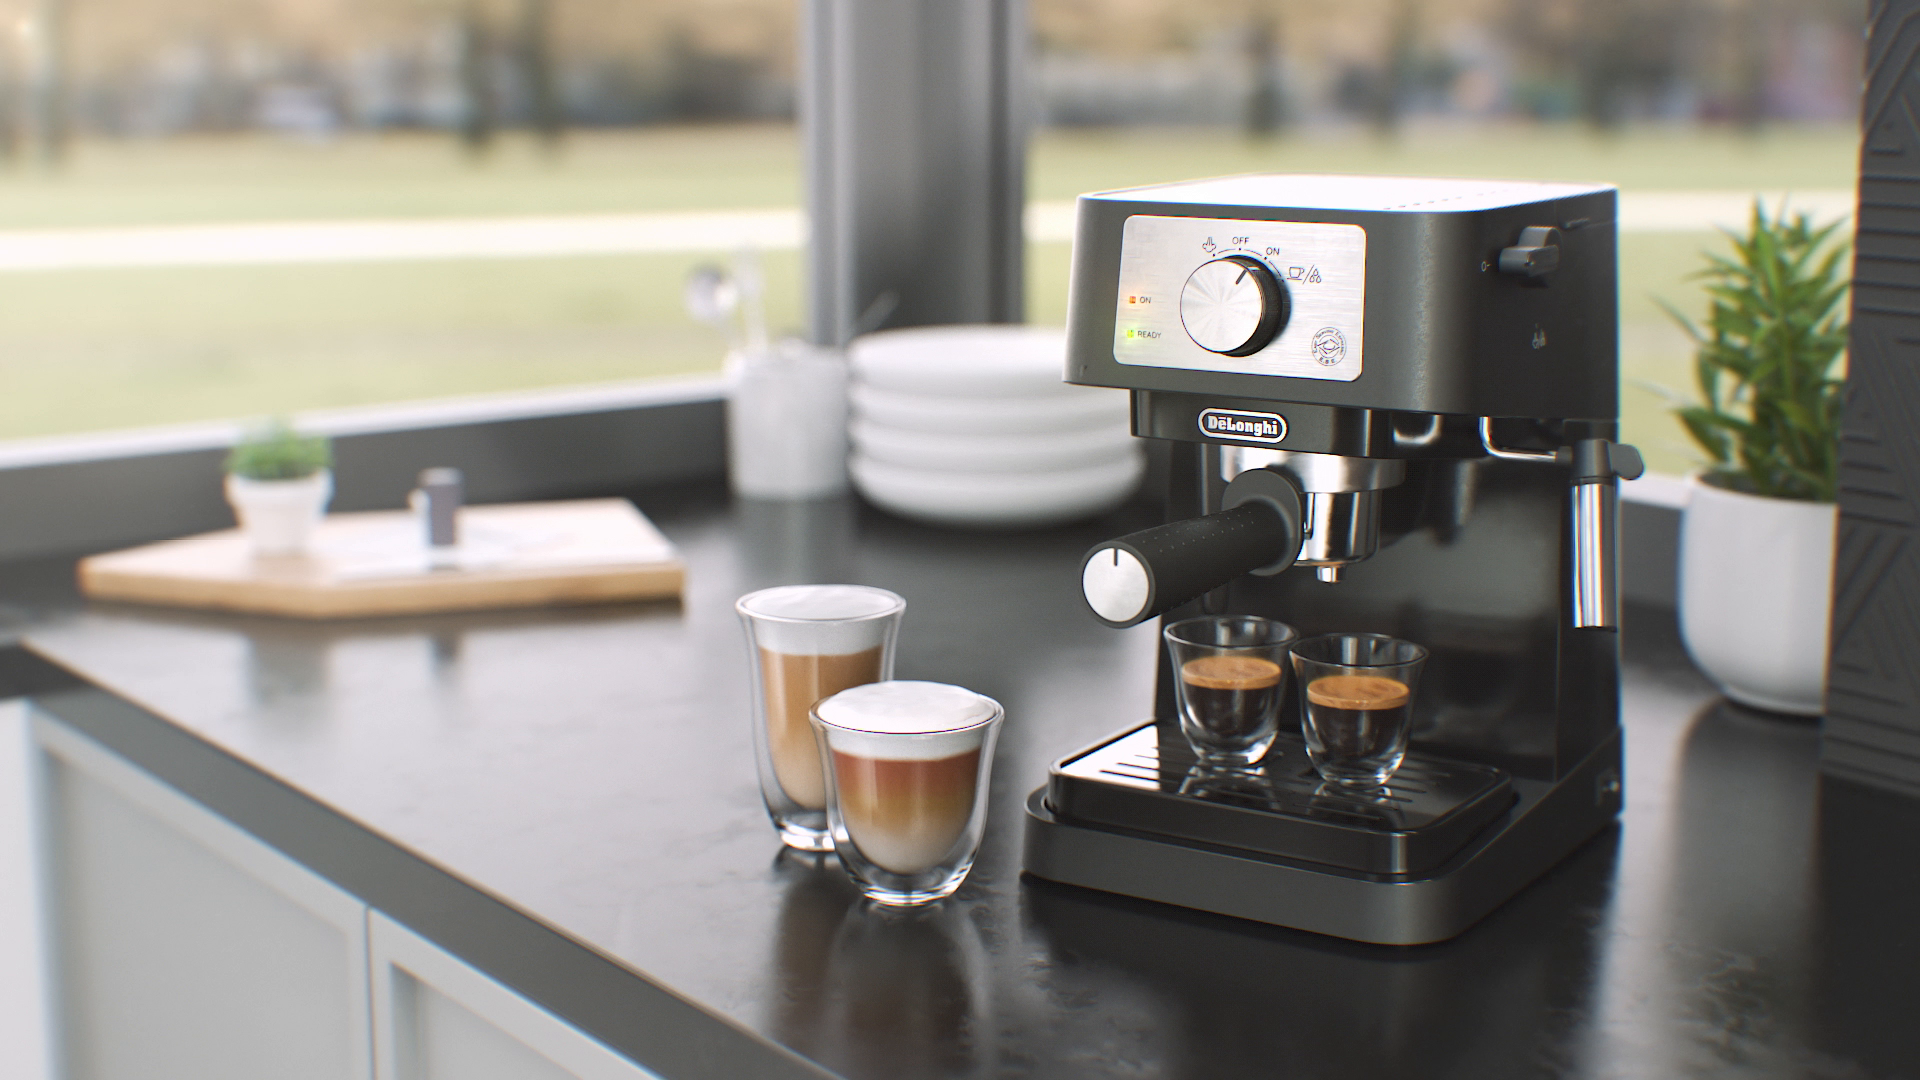 DeLonghi espresso, your best energy every morning